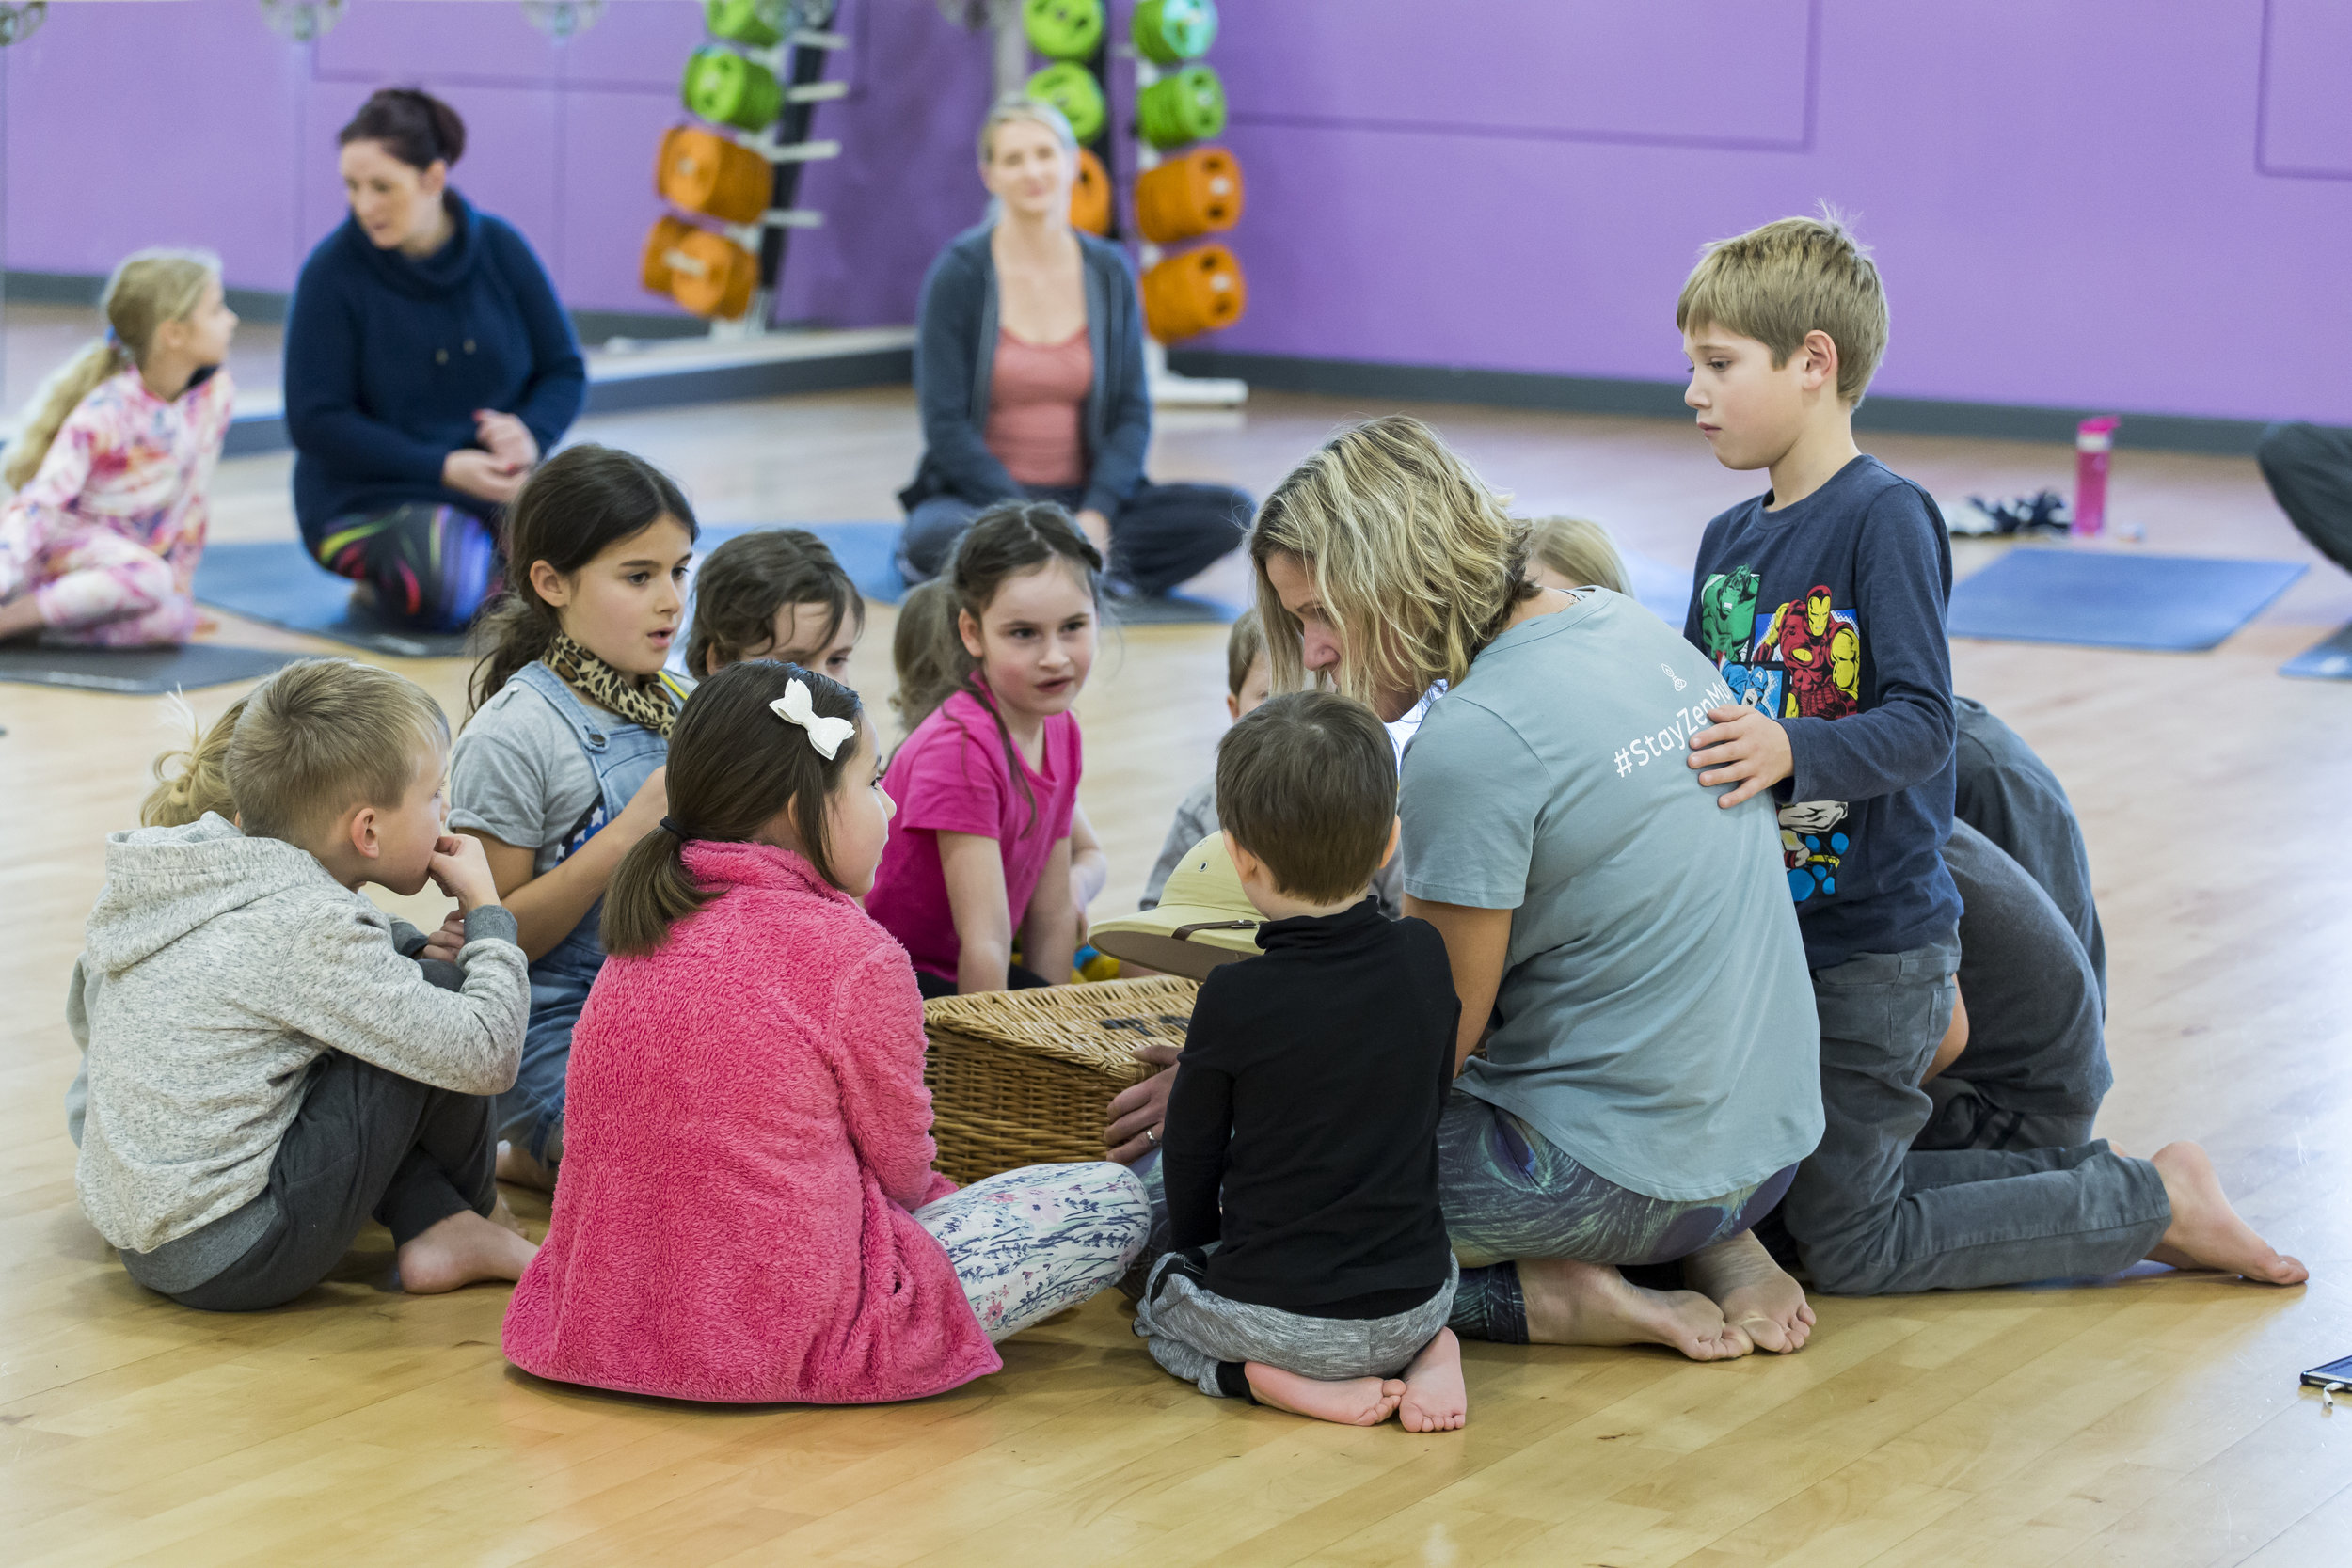 Toddler/Children's yoga teacher training - Learn to teach toddler, children's and teen yoga including the full range of yoga asanas appropriate for each child's age. Jackie will guide you on how to teach and encourage the benefits of yoga and mindfulness in a fun and engaging way.The ZenMuma Toddler/Children's Yoga course provides you with a Professional Certification in Toddler/ Children's Yoga.45-hour total, with three-day contact training. £550Learn More